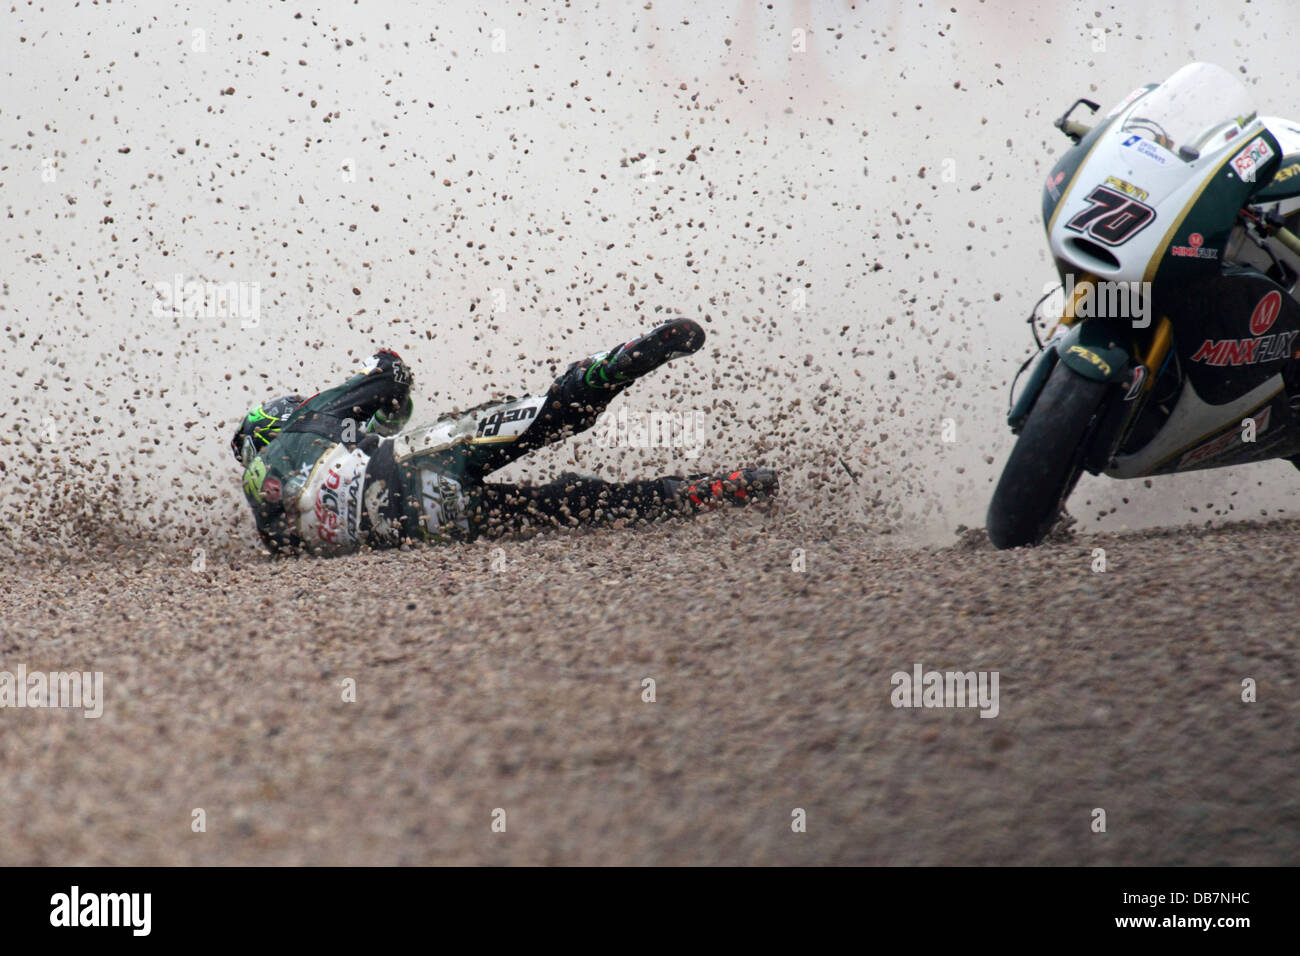 Crash during a motorcycle race into the gravel at Sachsenring racing circuit Stock Photo